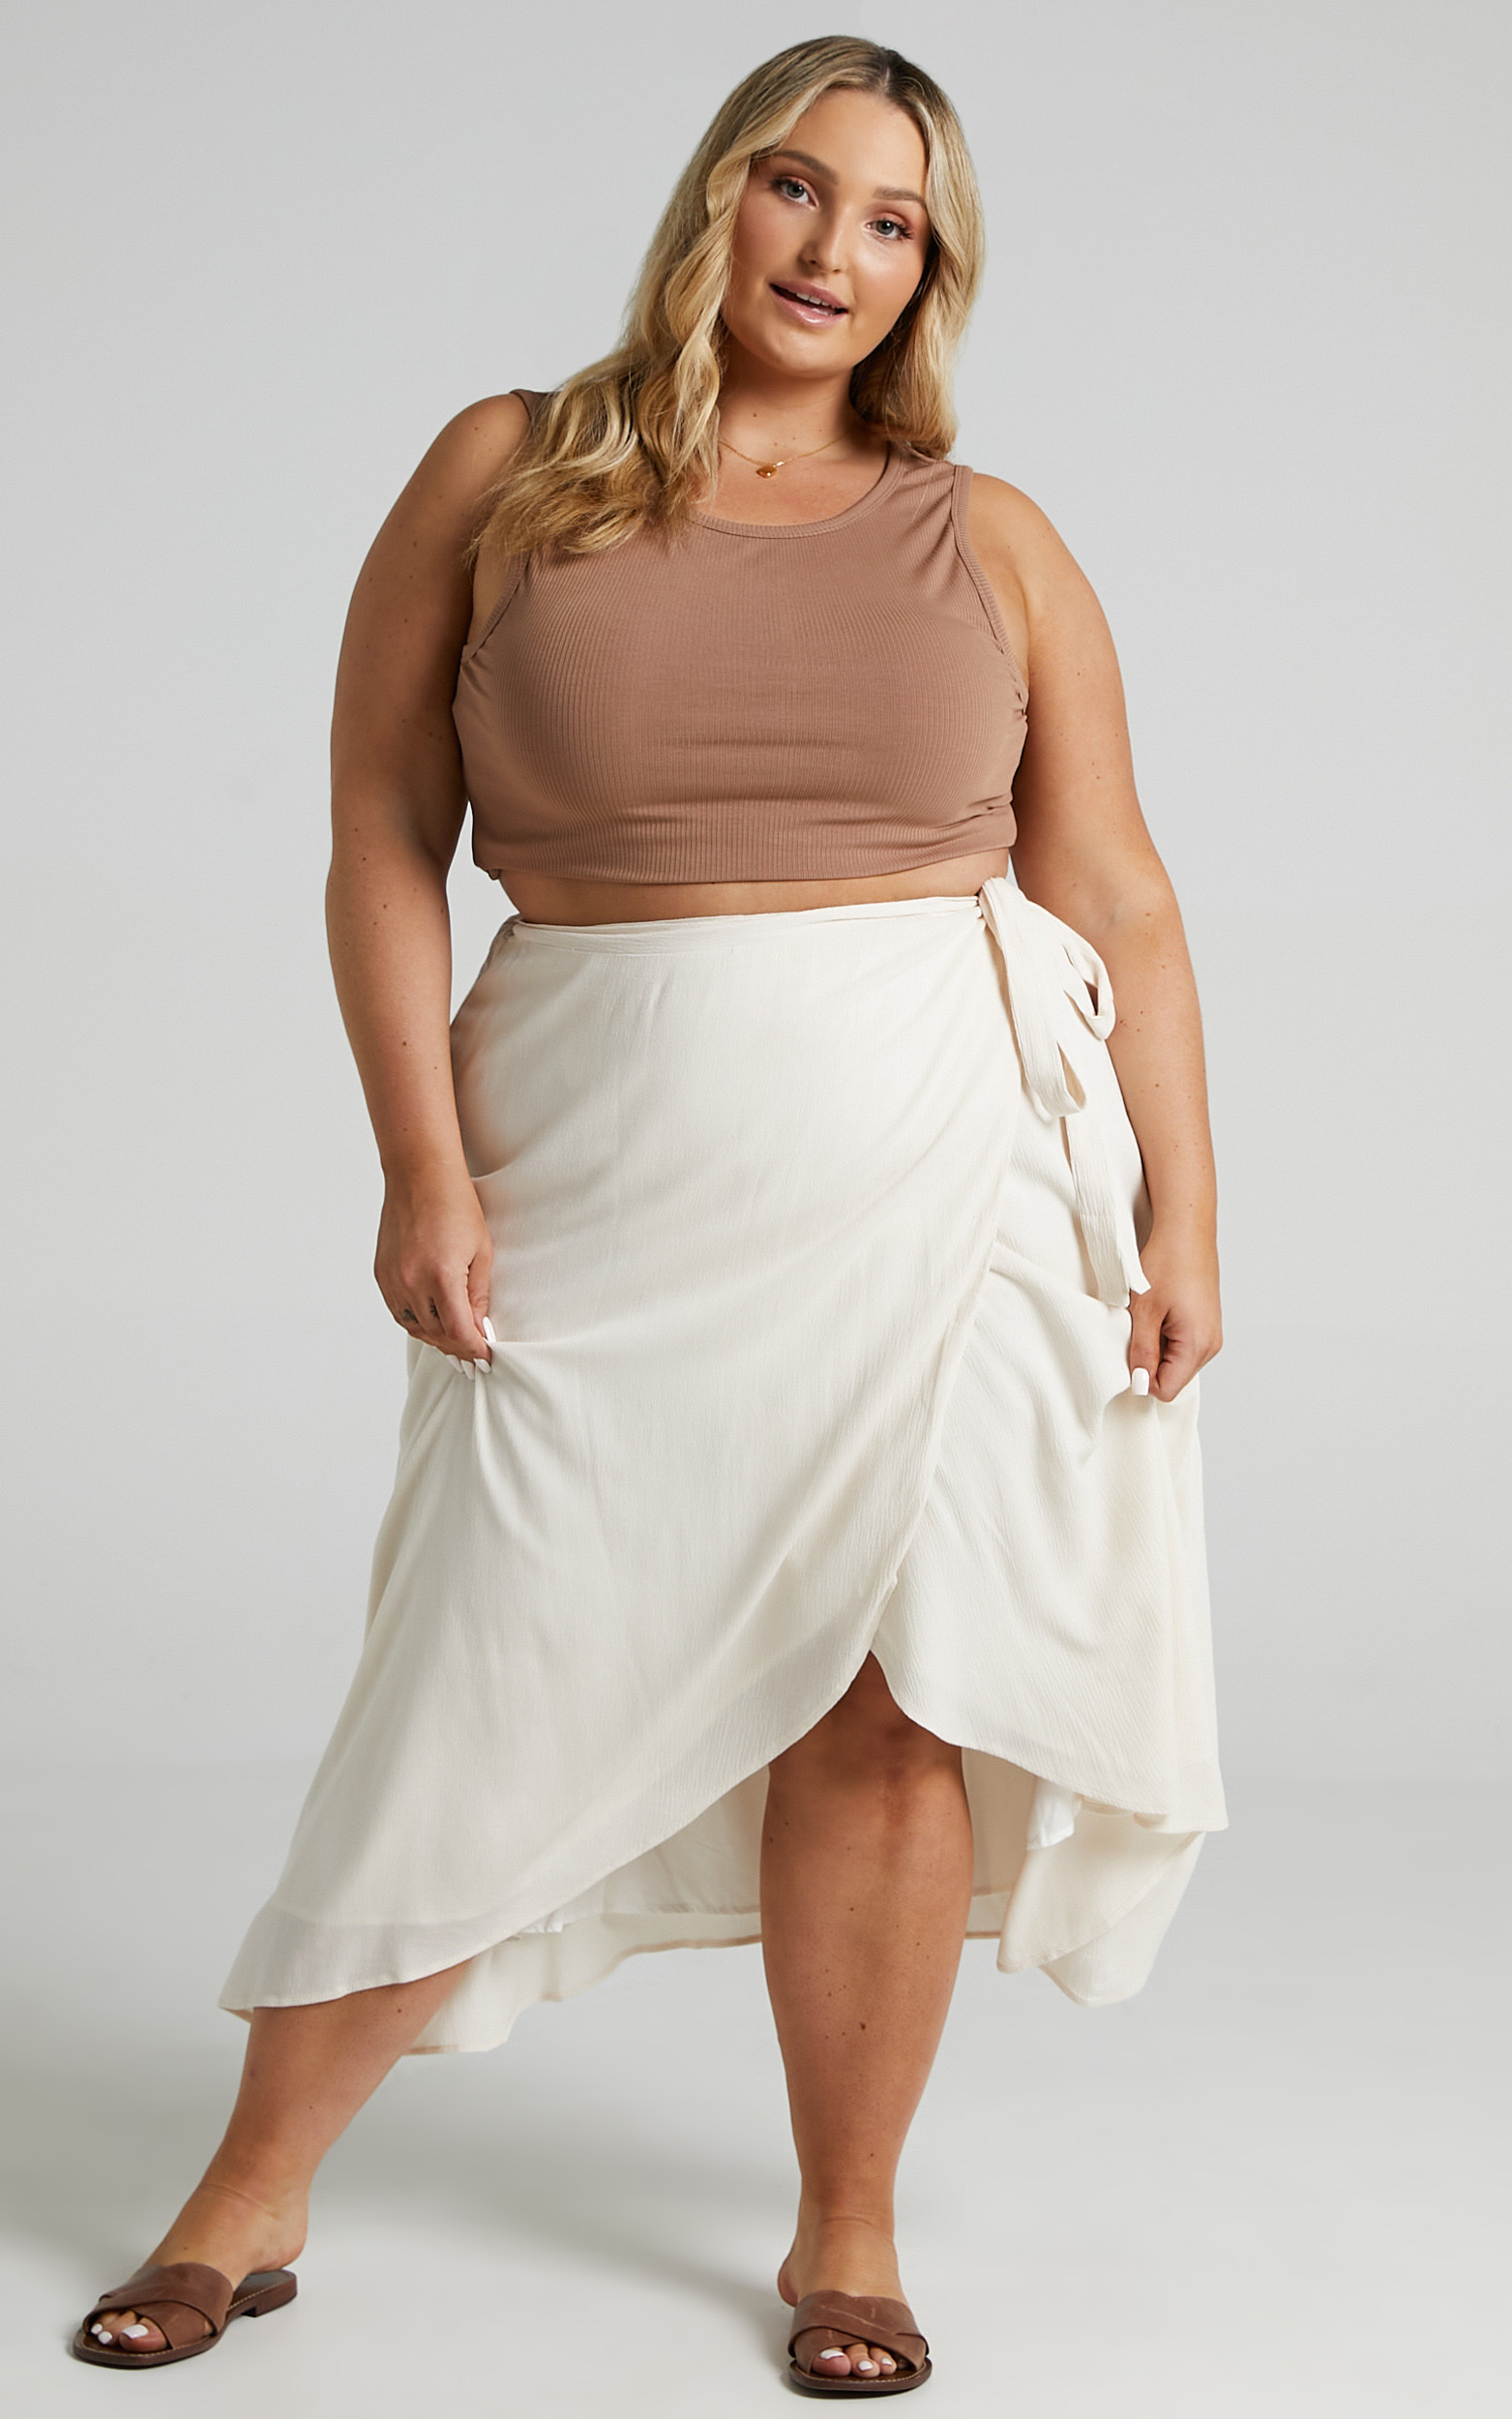 Come Find Me Skirt in White Linen Look - 20, WHT2, hi-res image number null